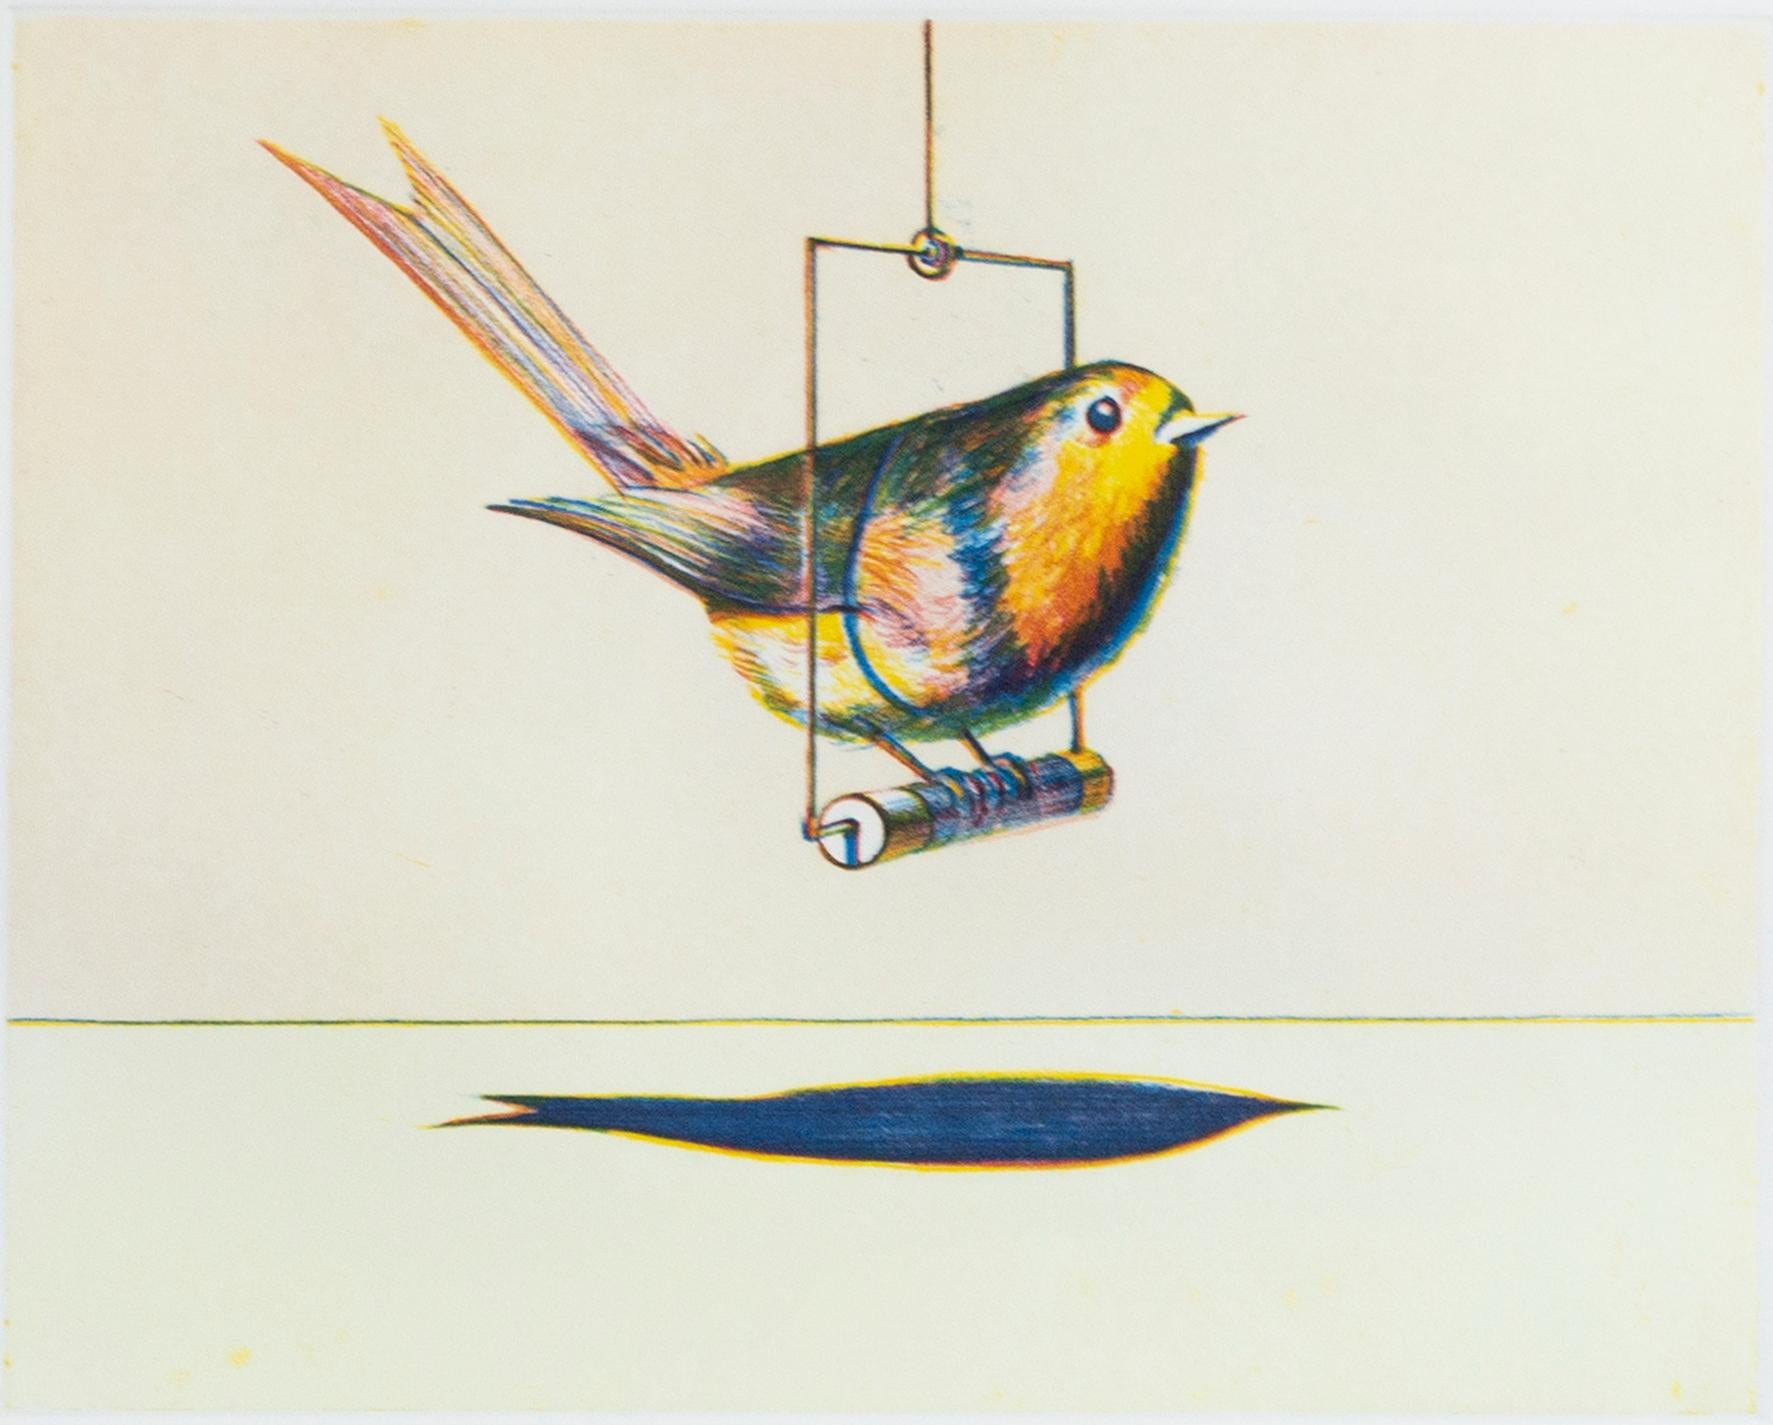 Bird on a Swing, from Recent Etchings I by Wayne Thiebaud